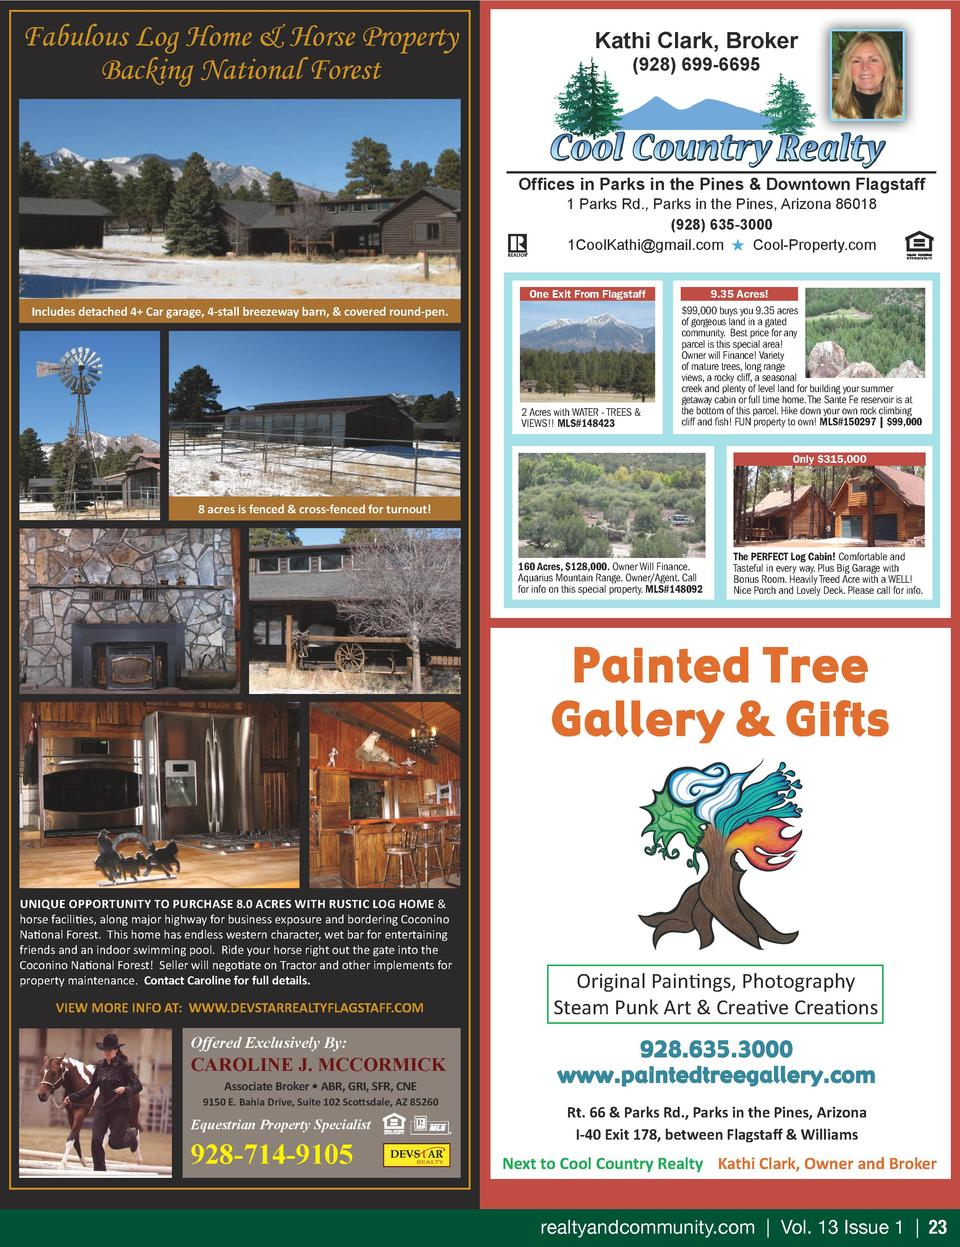 Fabulous Log Home   Horse Property Backing National Forest  Kathi Clark, Broker  928  699-6695  Offices in Parks in the Pi...